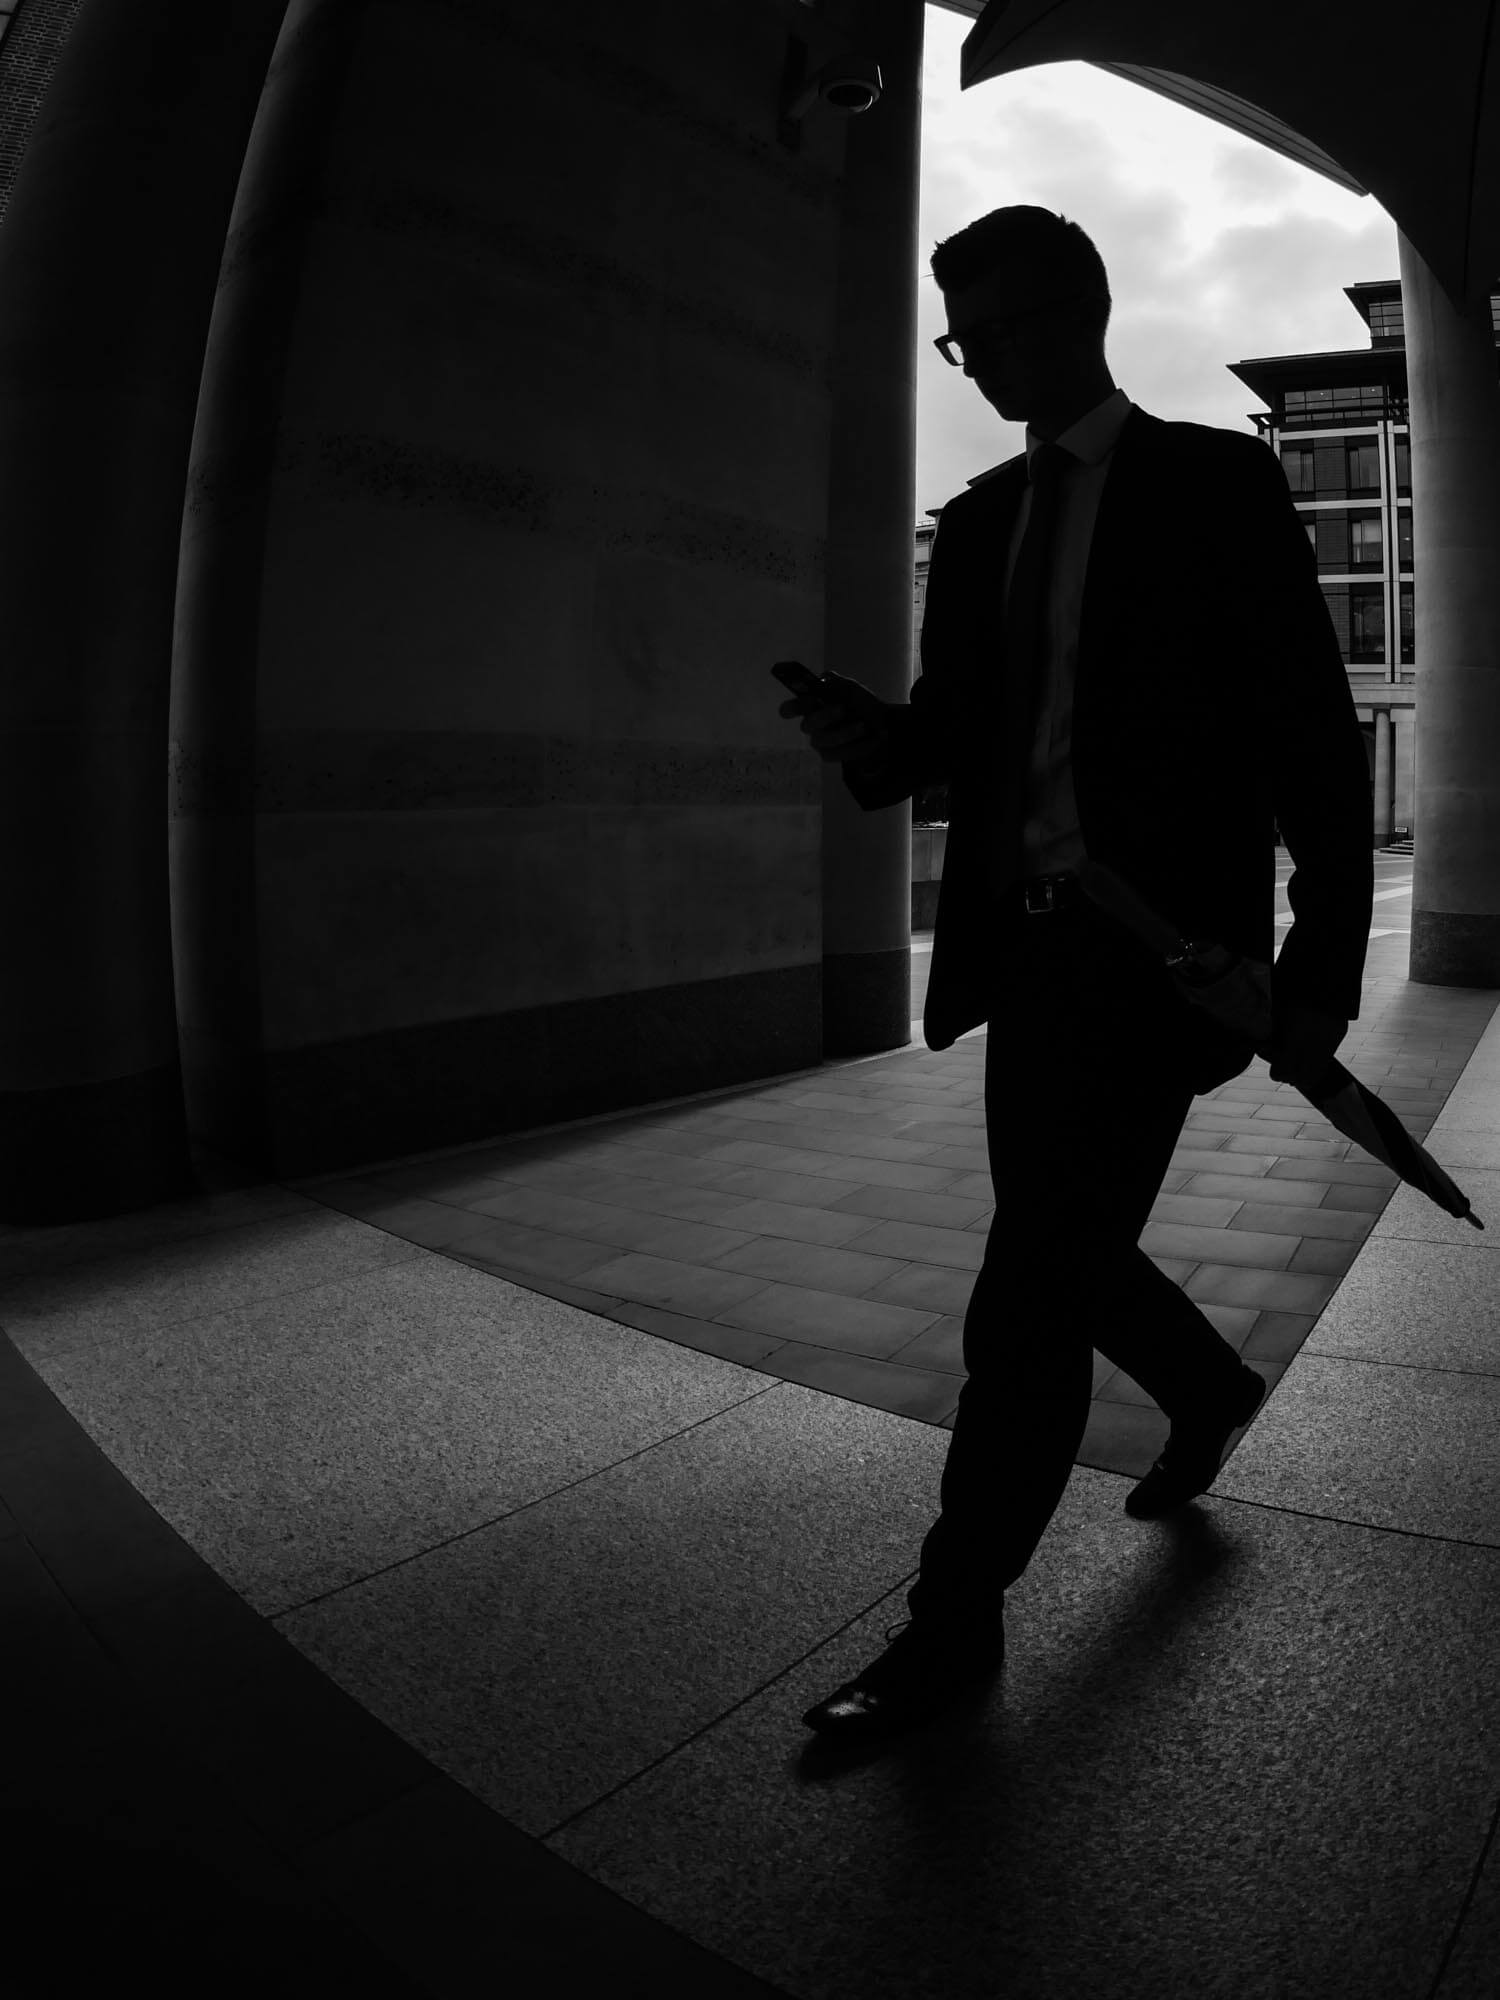 A silhouette of a man taken near London Stock Exchange